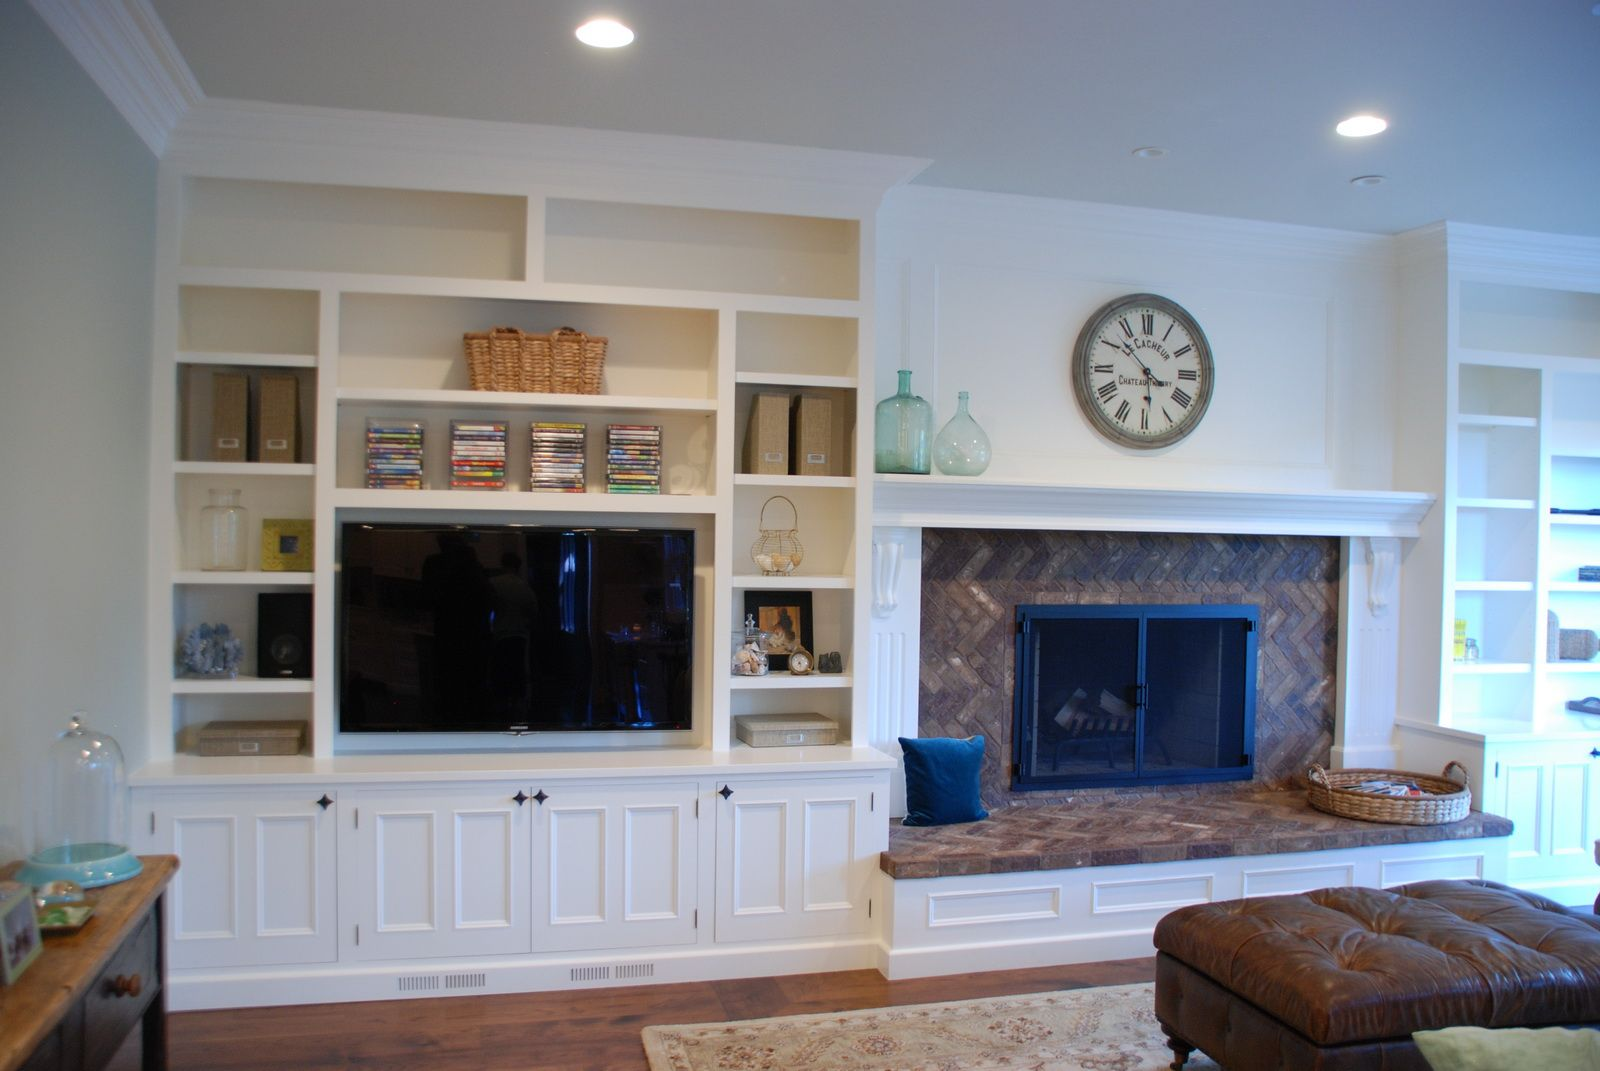 Built In Stereo And Tv Cabinet Next To Fireplace Fireplace Built